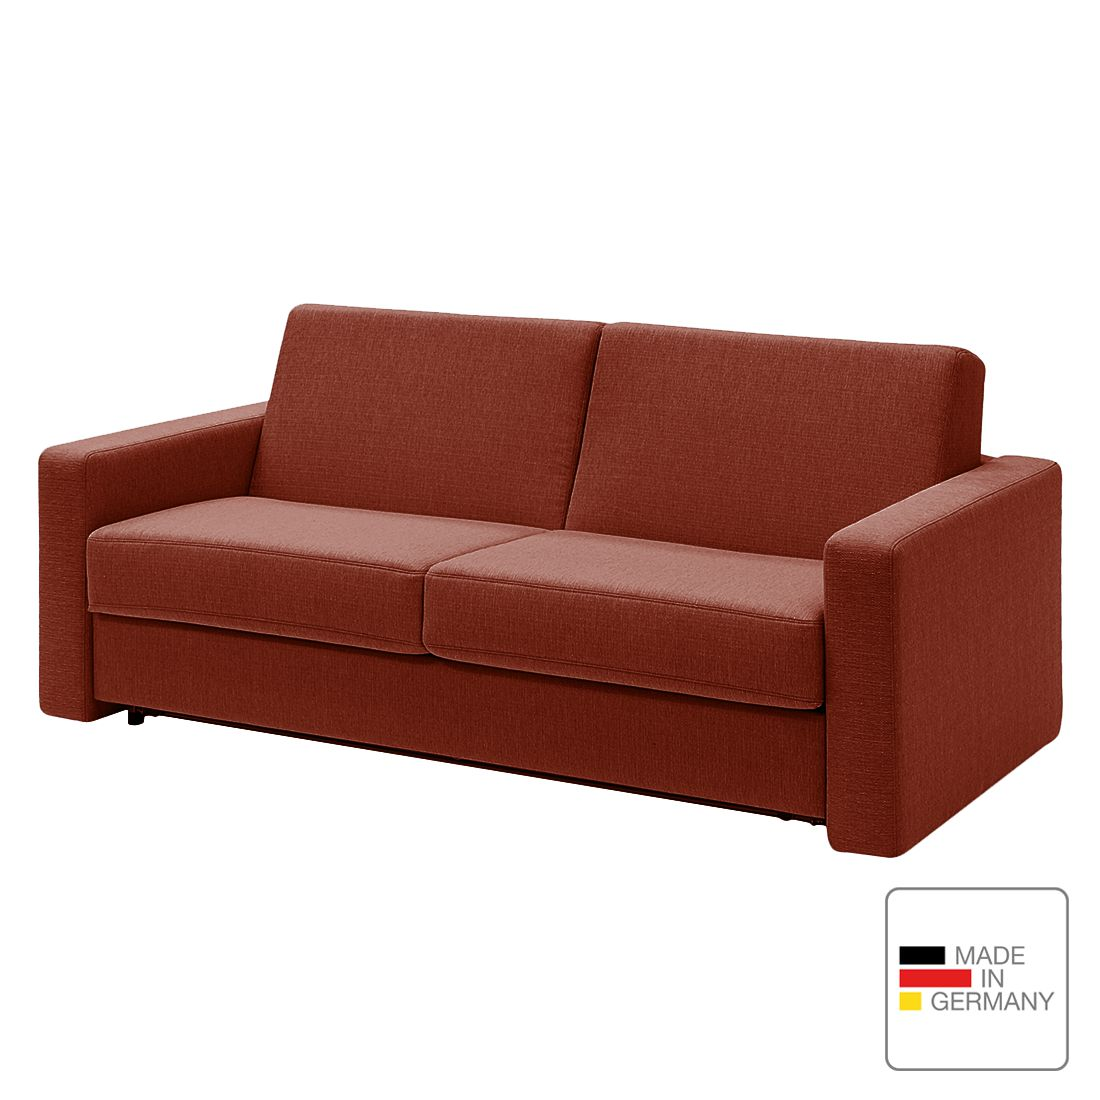 schlafsofa pidaro ii webstoff schaumstoff rot gerade armlehnen studio monroe g nstig kaufen. Black Bedroom Furniture Sets. Home Design Ideas